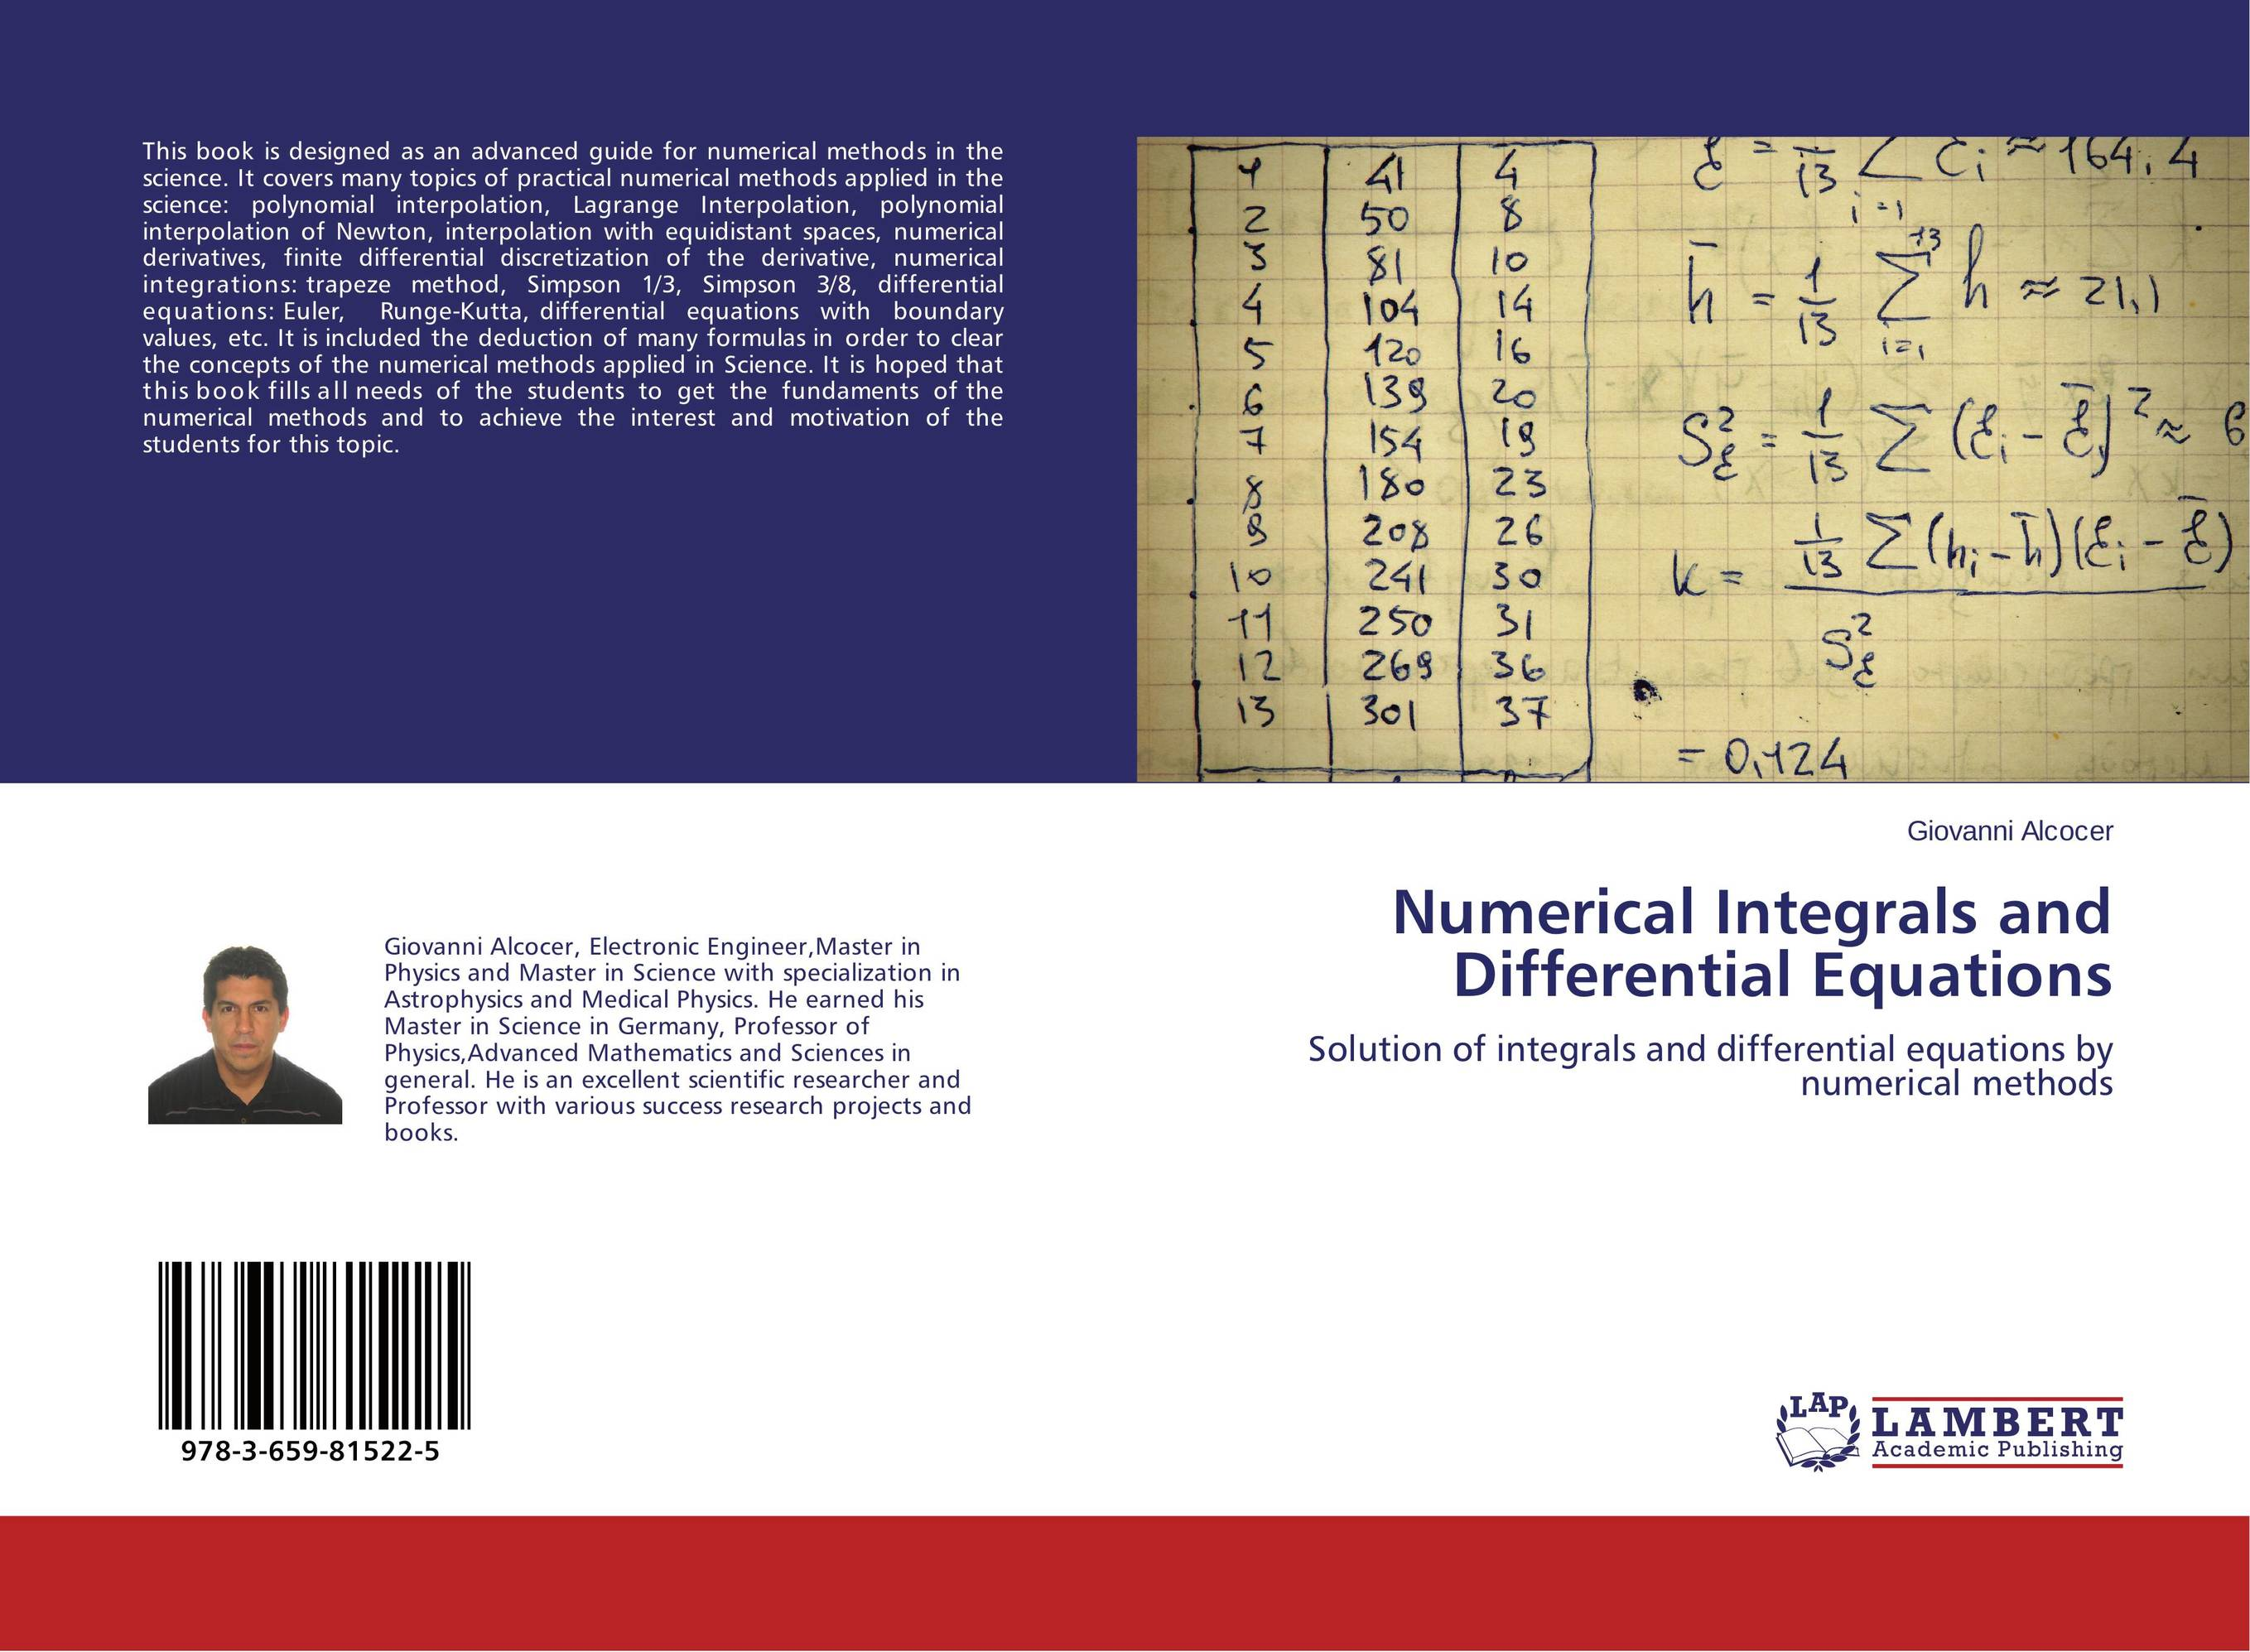 differential equations research papers One might say that ordinary differential equations (notably in isaac newton's analysis of the motion of celestial bodies) had a central role in the development of modern applied mathematics this special issue is devoted to research articles which build on this spirit: combining analysis with applications of ordinary differential equations.